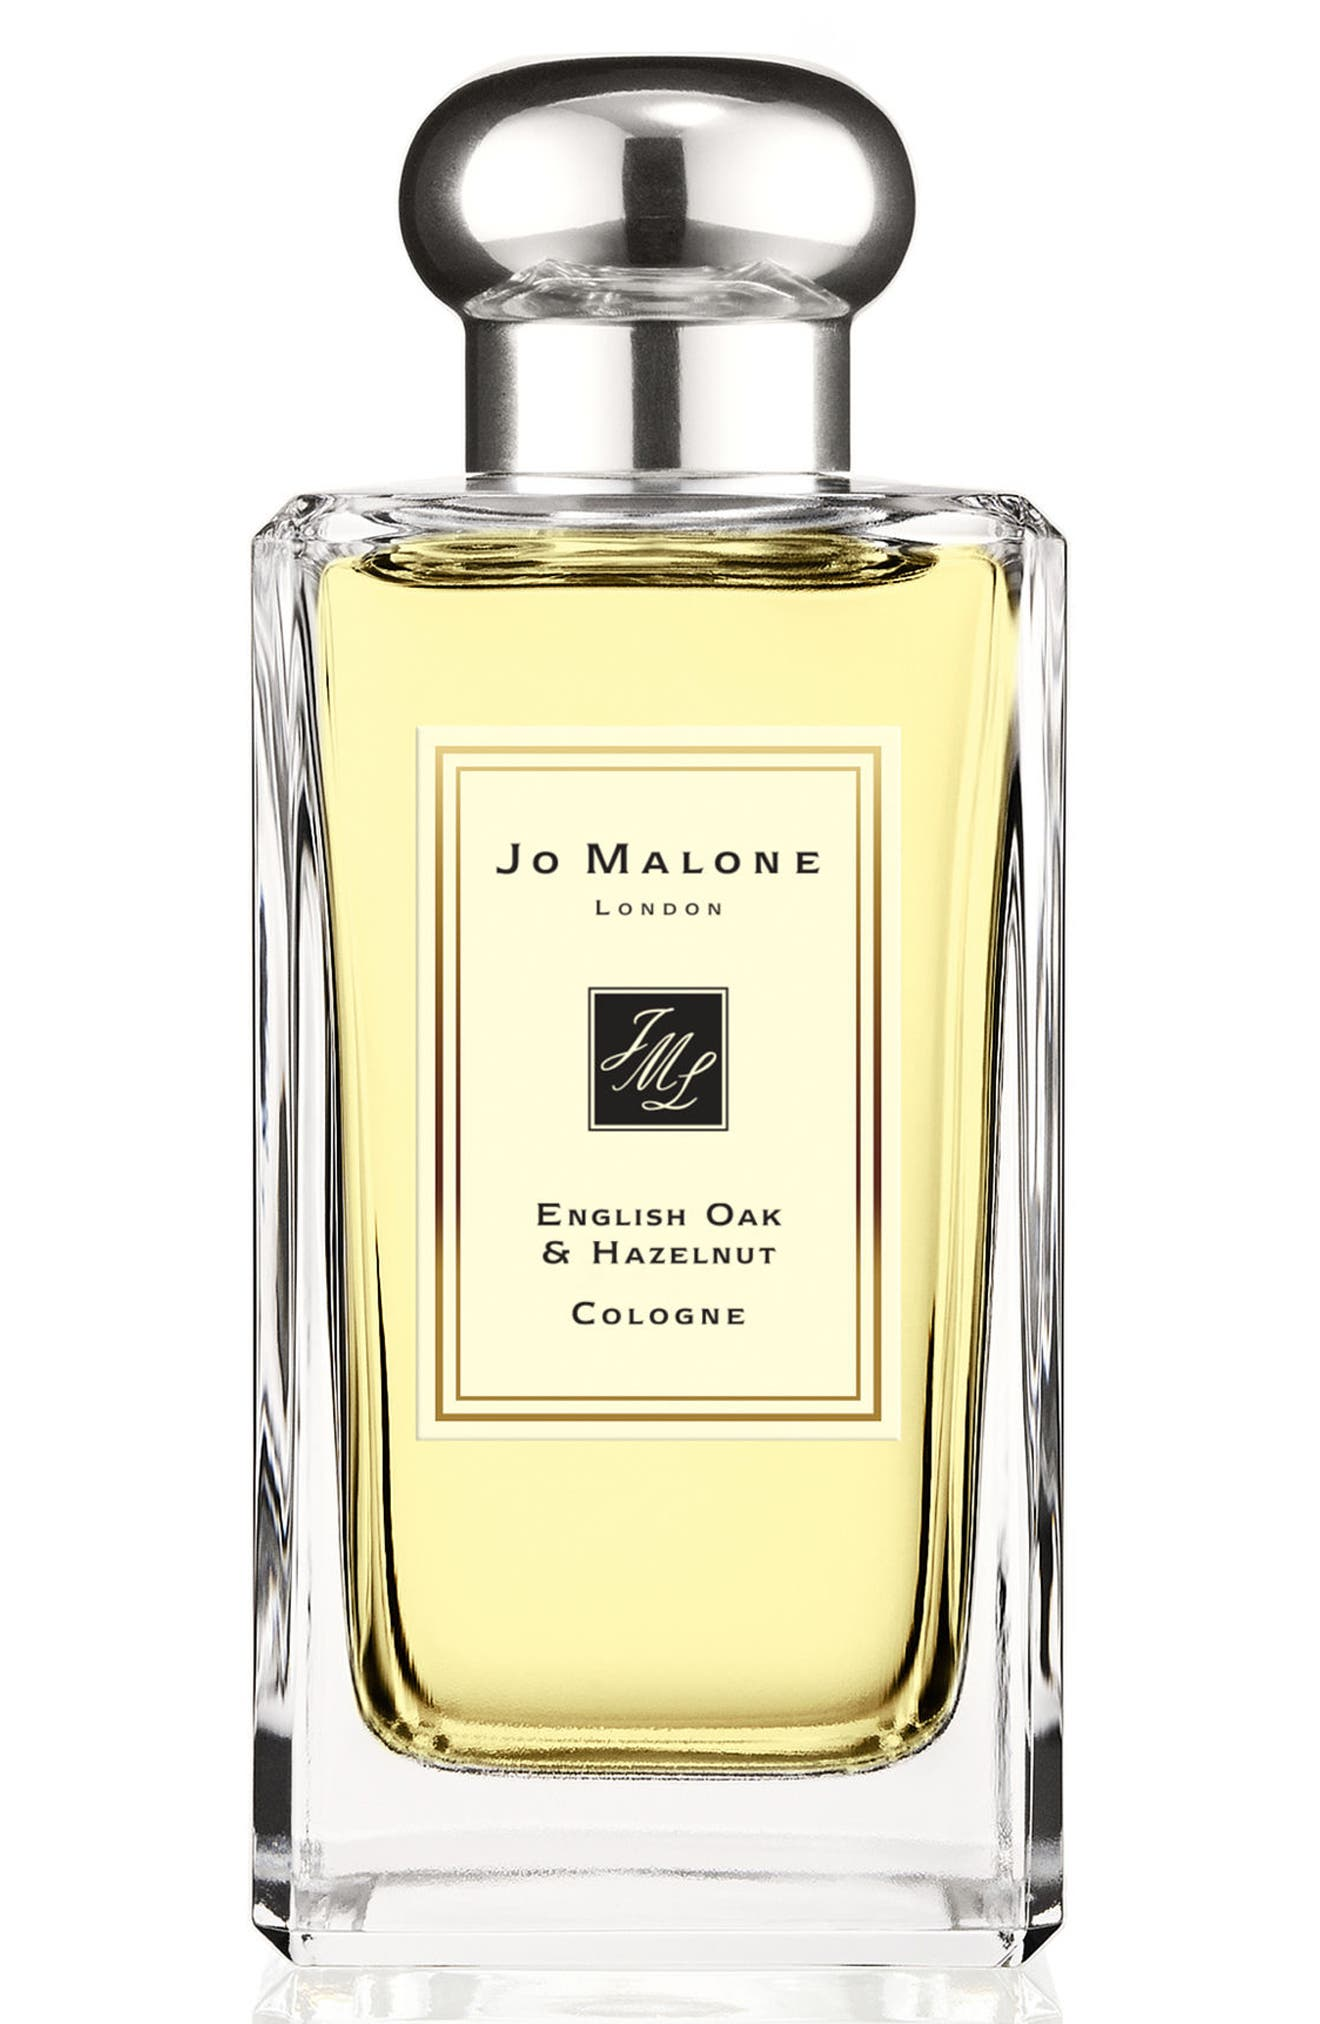 Jo Malone London™ English Oak & Hazelnut Cologne